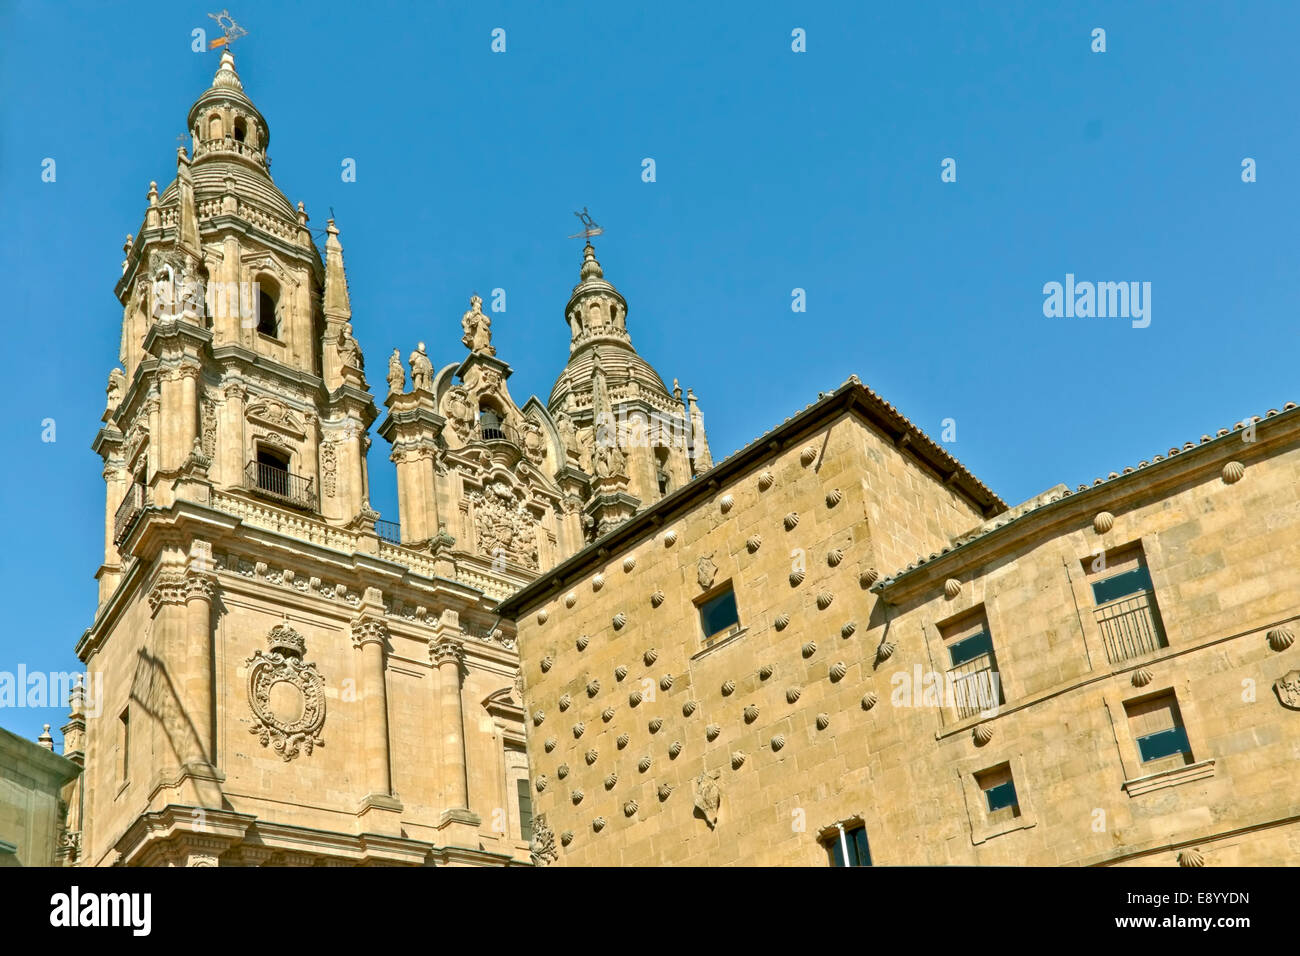 Detailed view of the façade of Casa de las Conchas & La Cleraçia, Salamanca, Castilla y León, - Stock Image